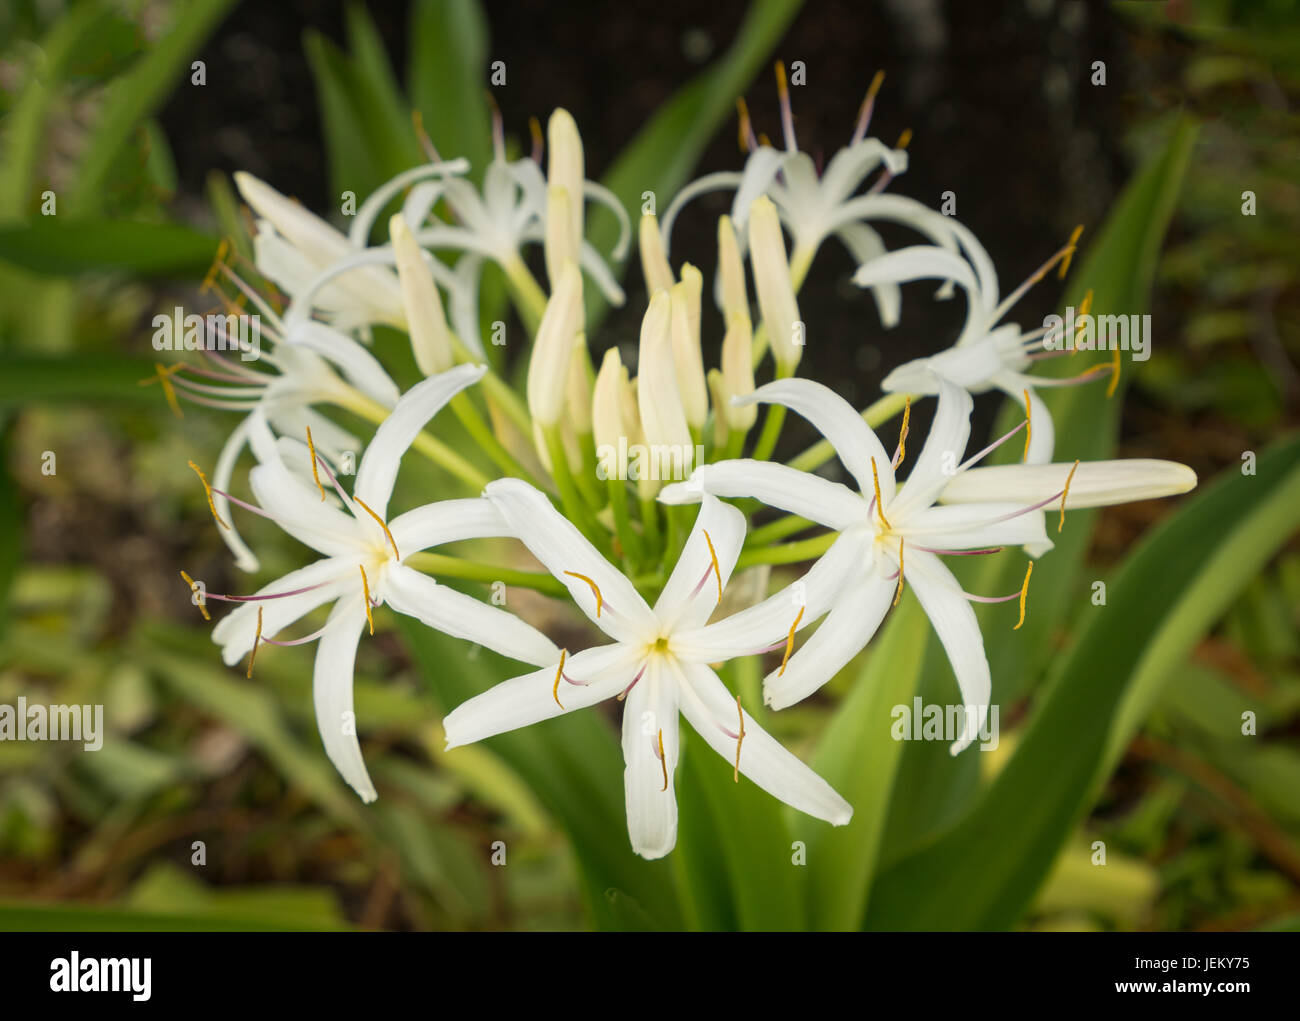 White Spider Lily Flower In Shade Of A Tree Stock Photo 146726585